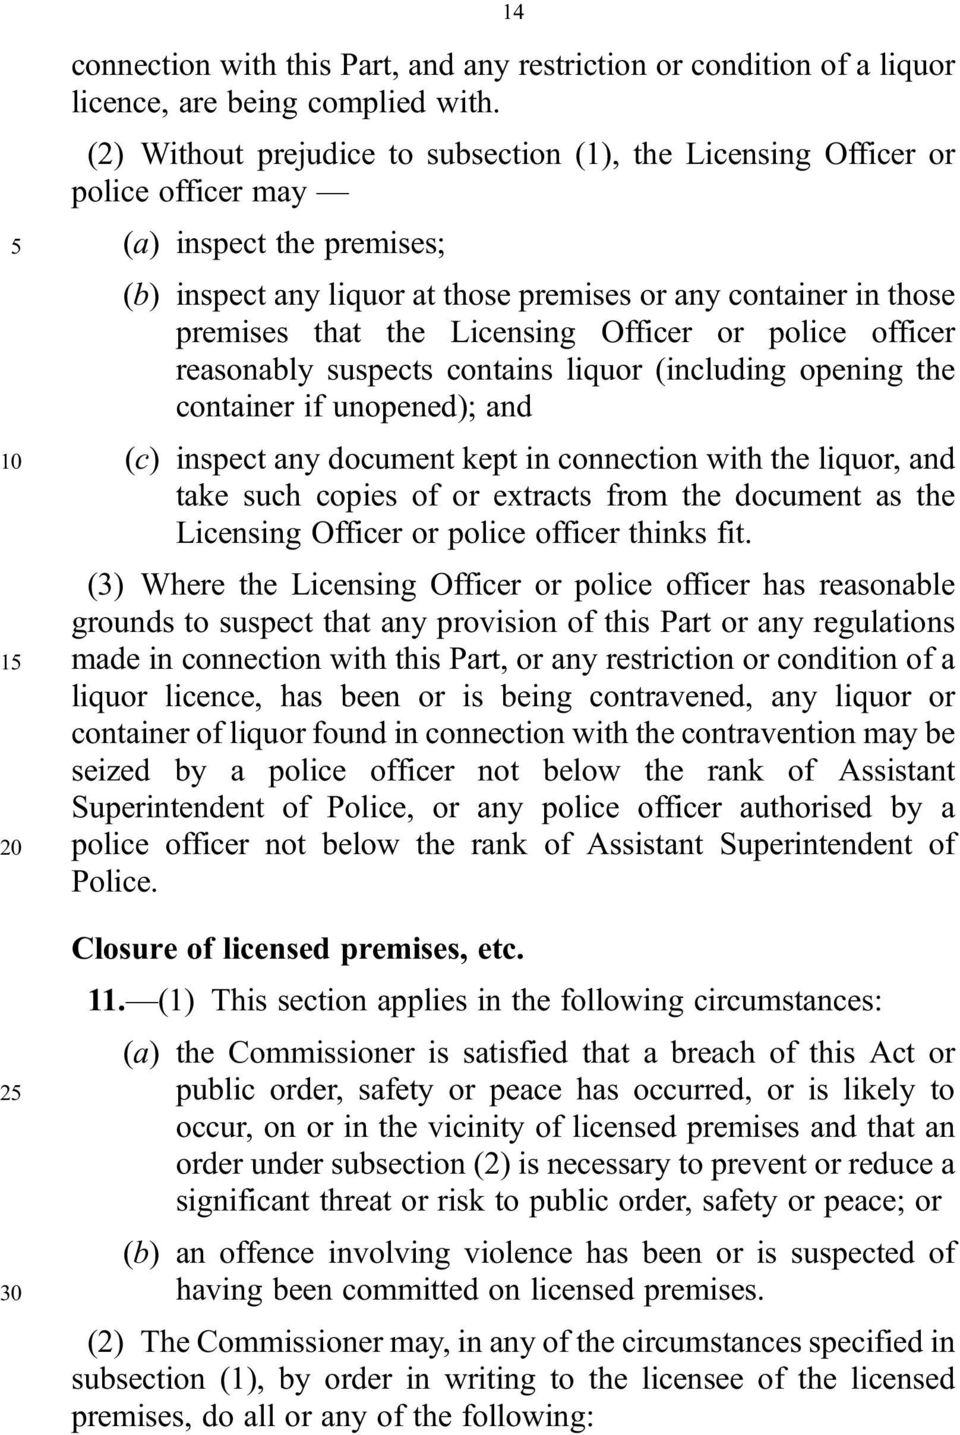 Licensing Officer or police officer reasonably suspects contains liquor (including opening the container if unopened); and 10 (c) inspect any document kept in connection with the liquor, and take